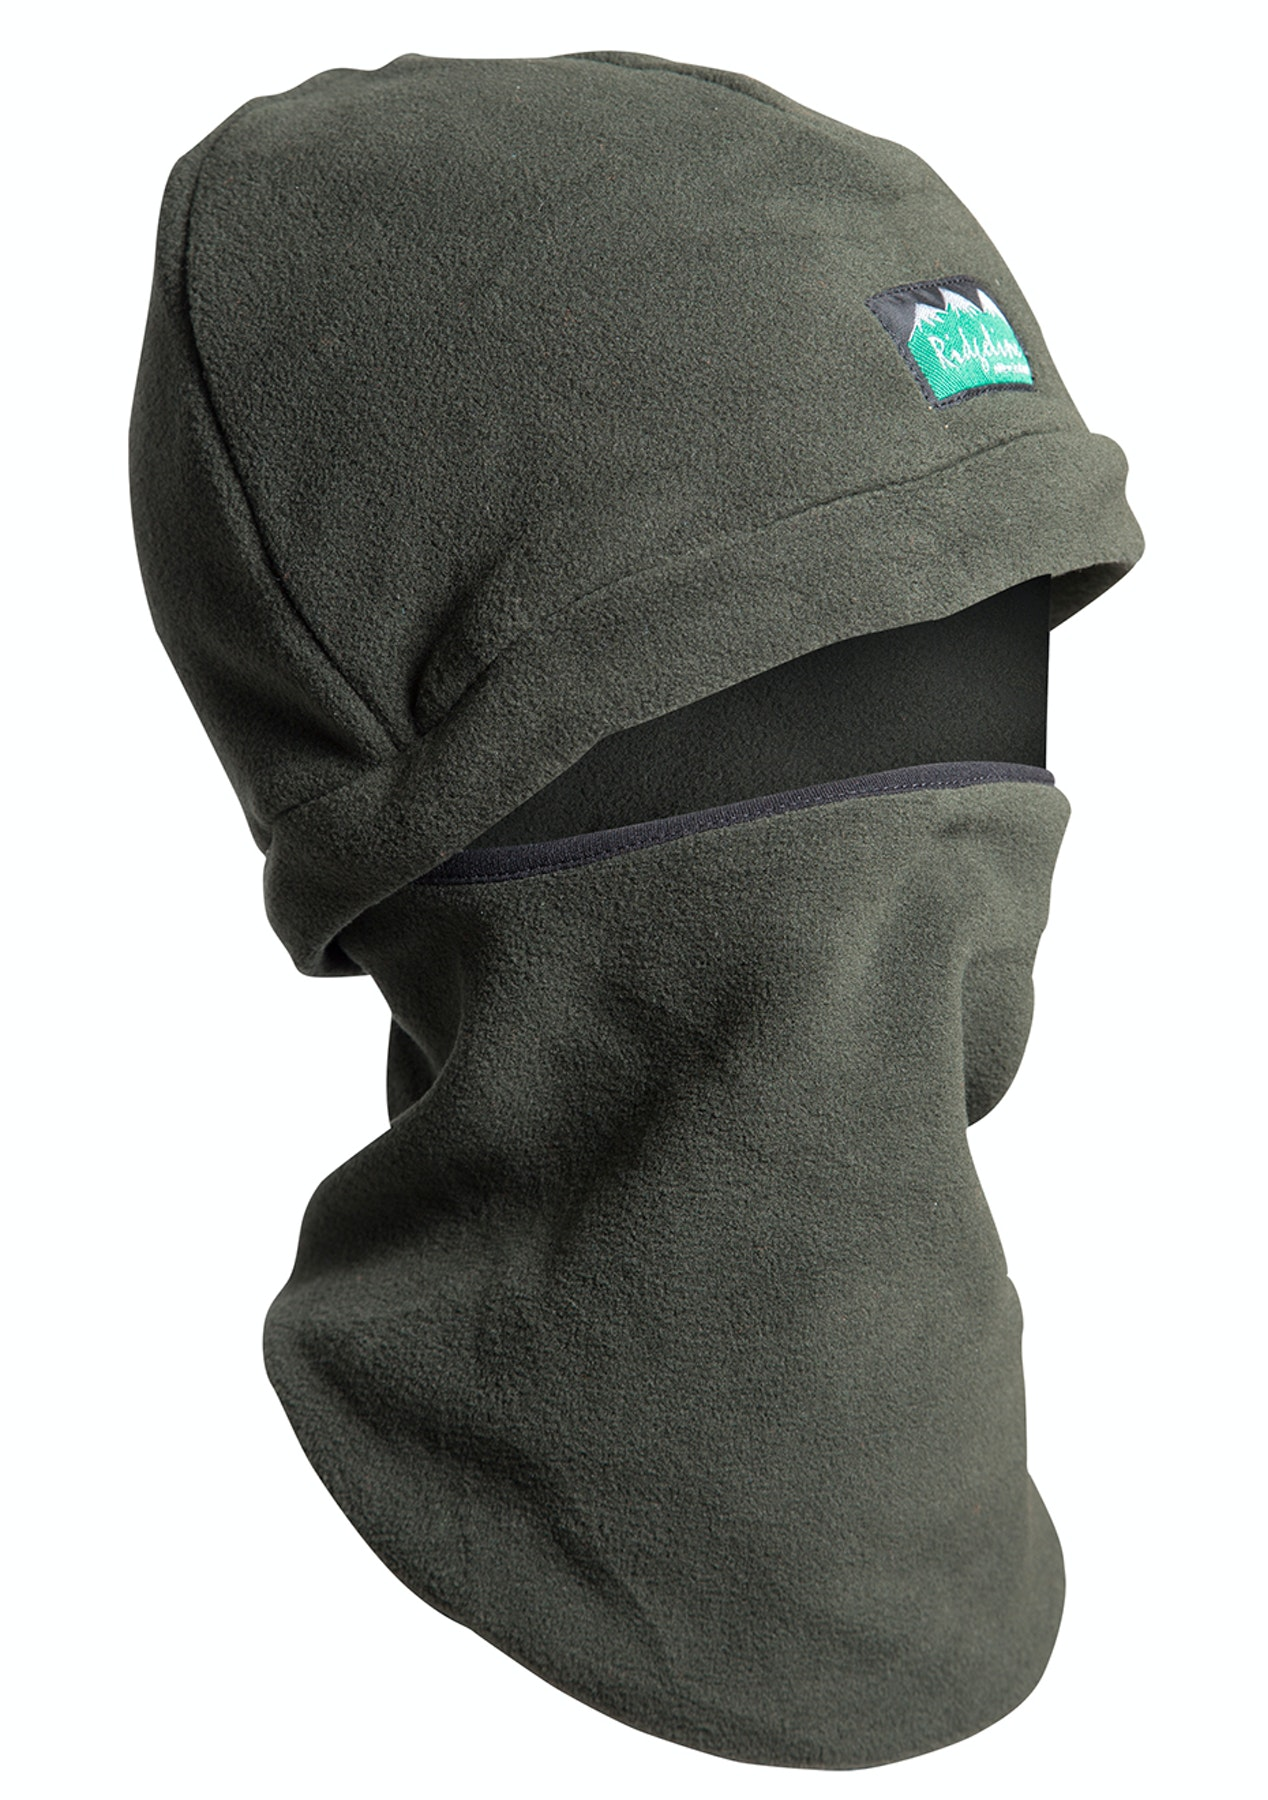 a74afa877d9 Ridgeline Adult Micro Beanie Olive - Ridgeline Run-out! Massive Price  drops! Up to 70% Off - Onceit